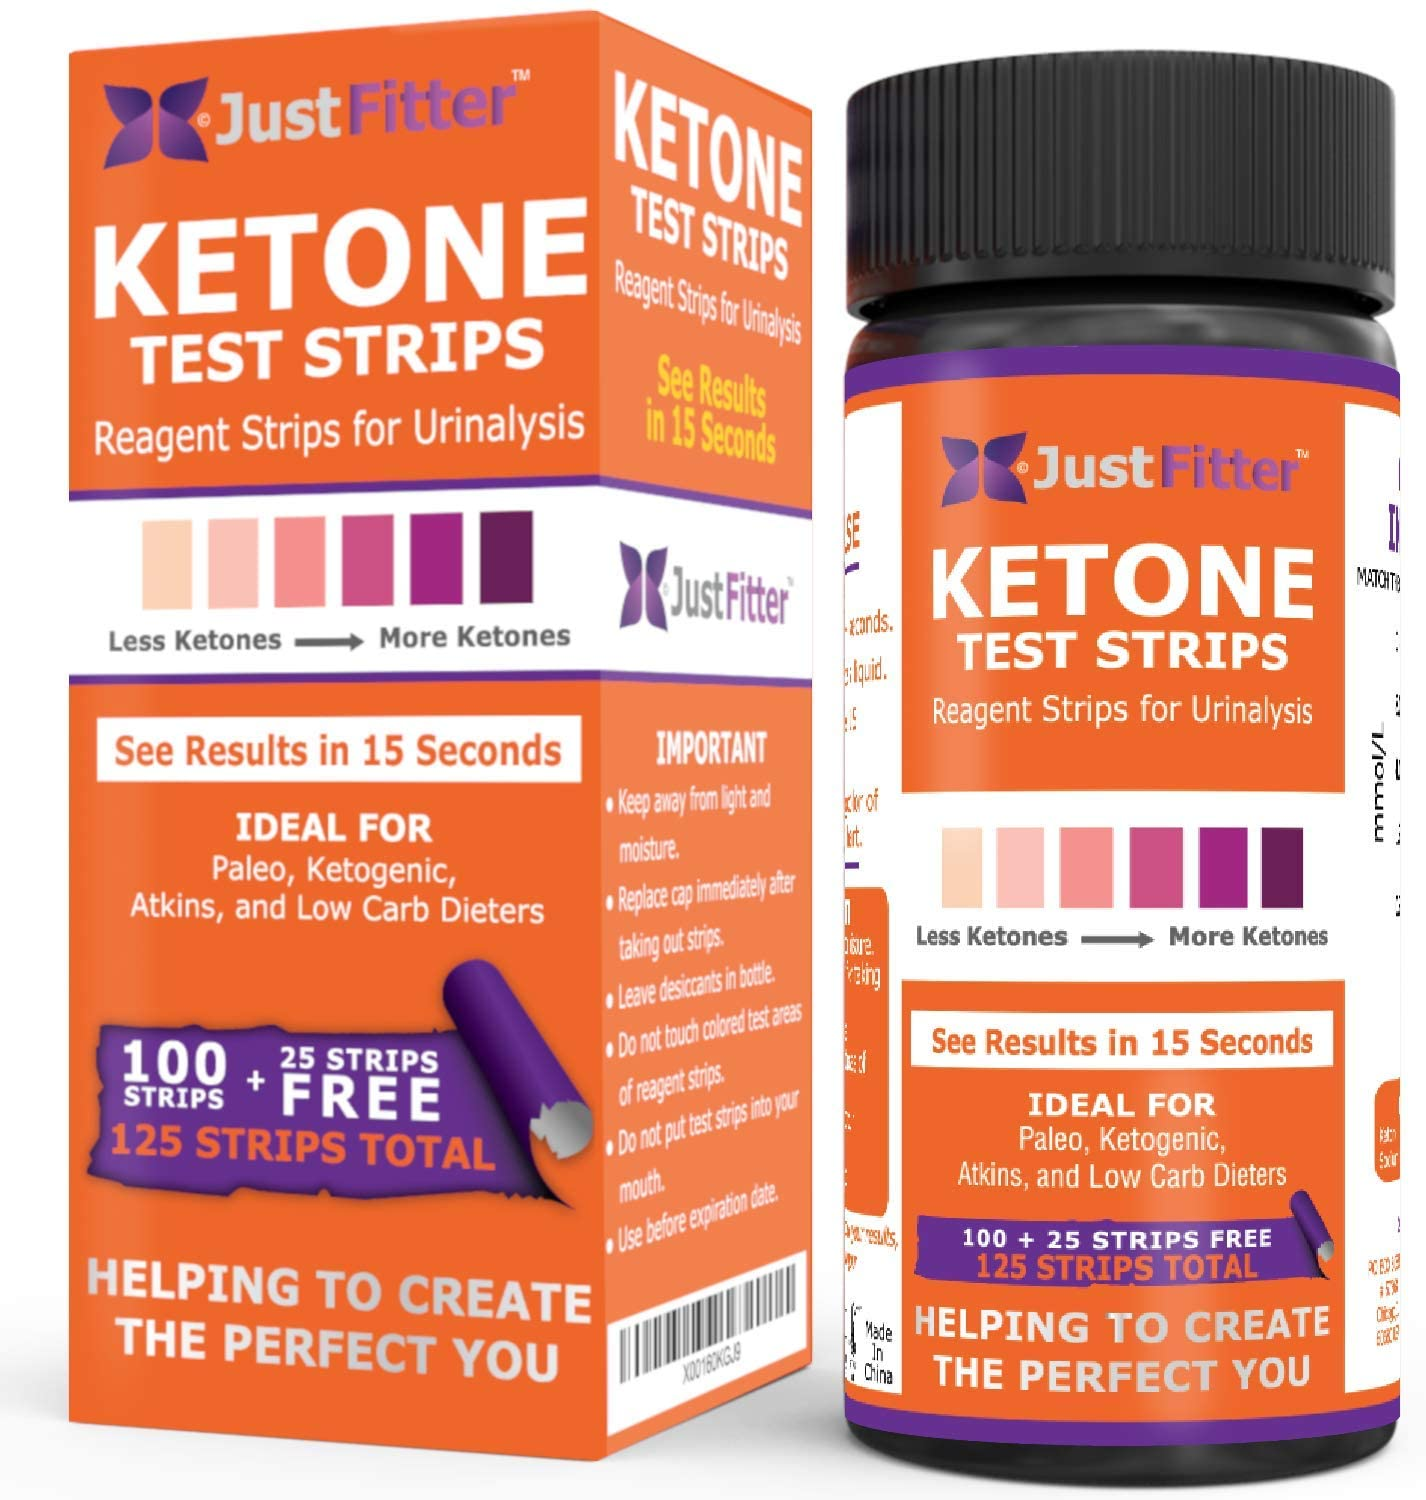 Ketone Keto Urine Test Strips. Look & Feel Fabulous on a Low Carb Ketogenic or HCG Diet. Get Your Body Back! Accurately Measure Your Fat Burning Ketosis Levels.